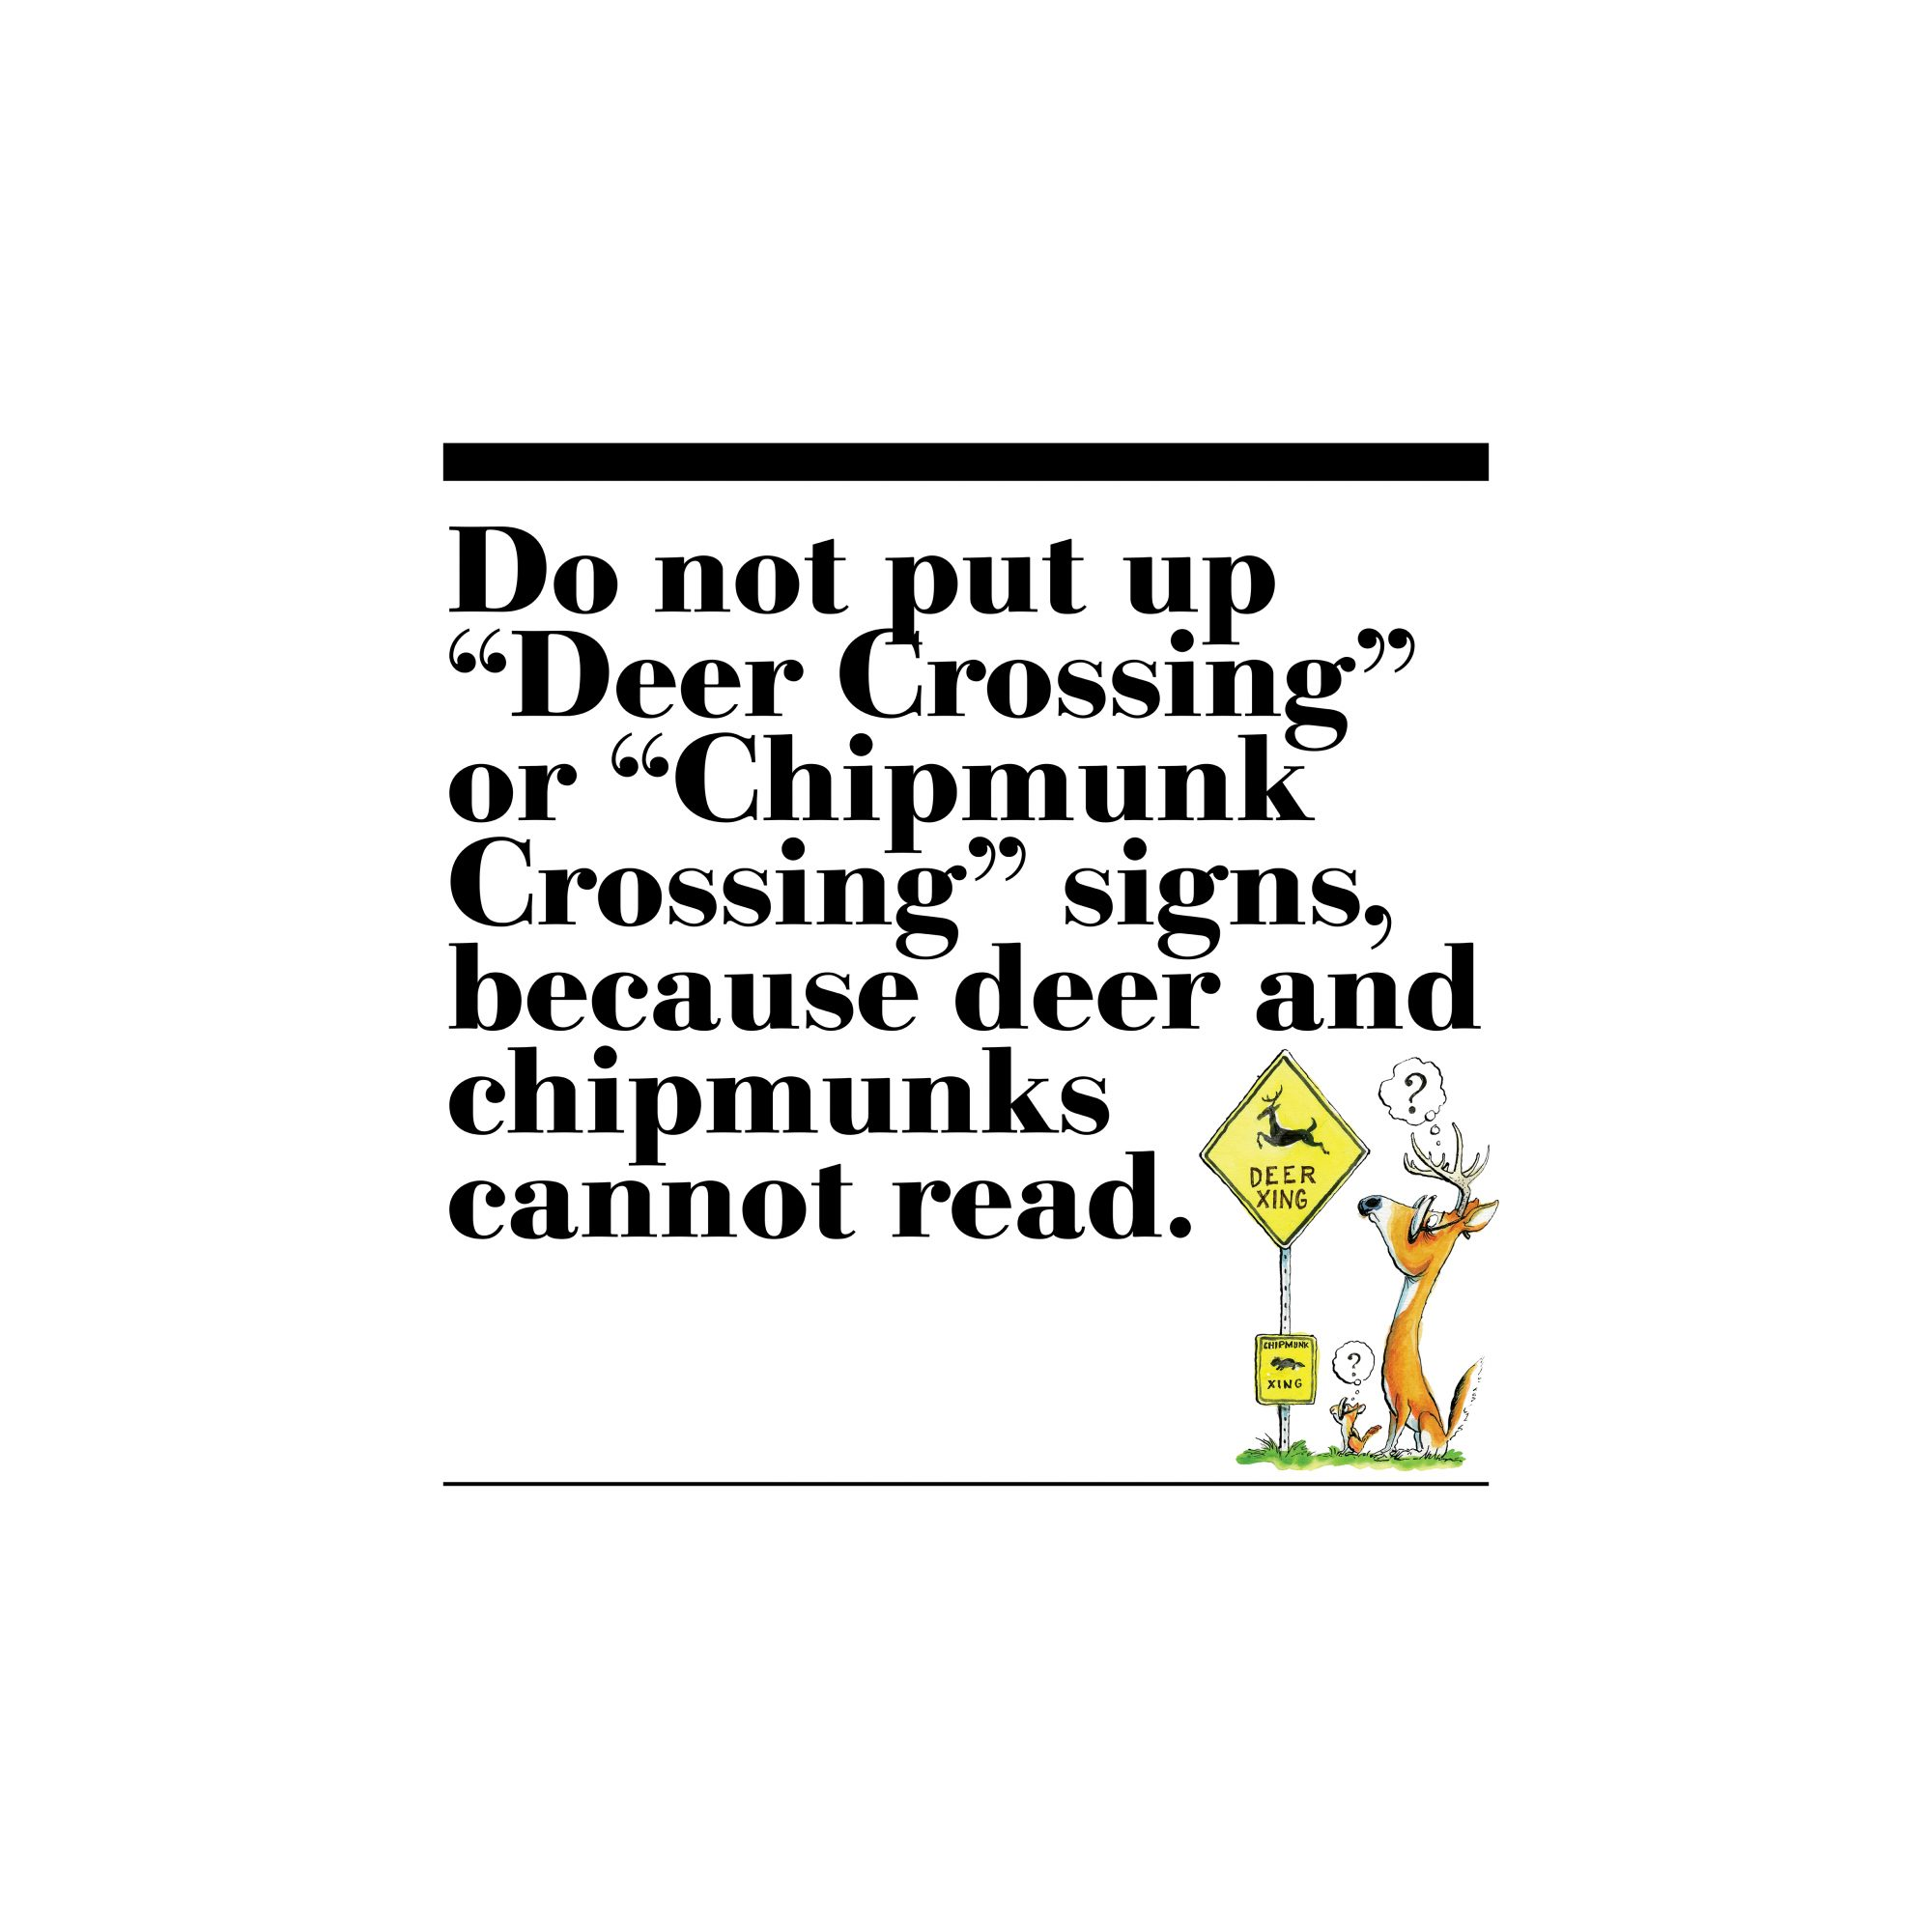 """31. Do not put up """"Deer Crossing"""" or """"Chipmunk Crossing"""" signs, because deer and chipmunks cannot read."""